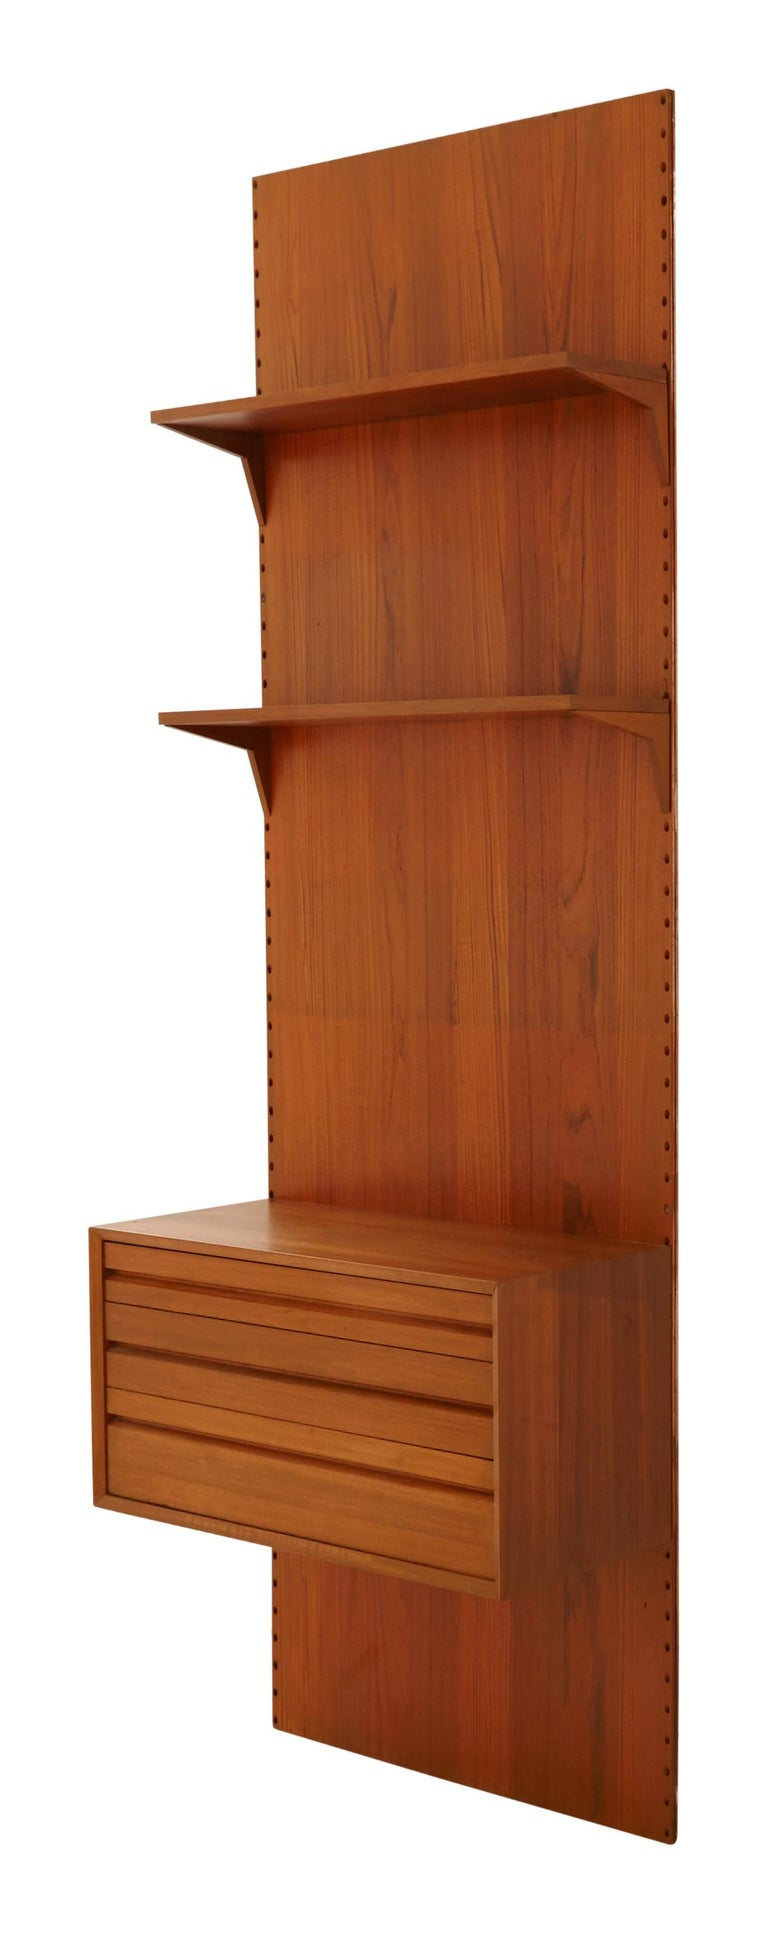 """•Mid-20th century •Teak wood •Mountable •Designed by Poul Cadovius for Cado •France •Other coordinating pieces available •Measures: 31.5"""" W x 16"""